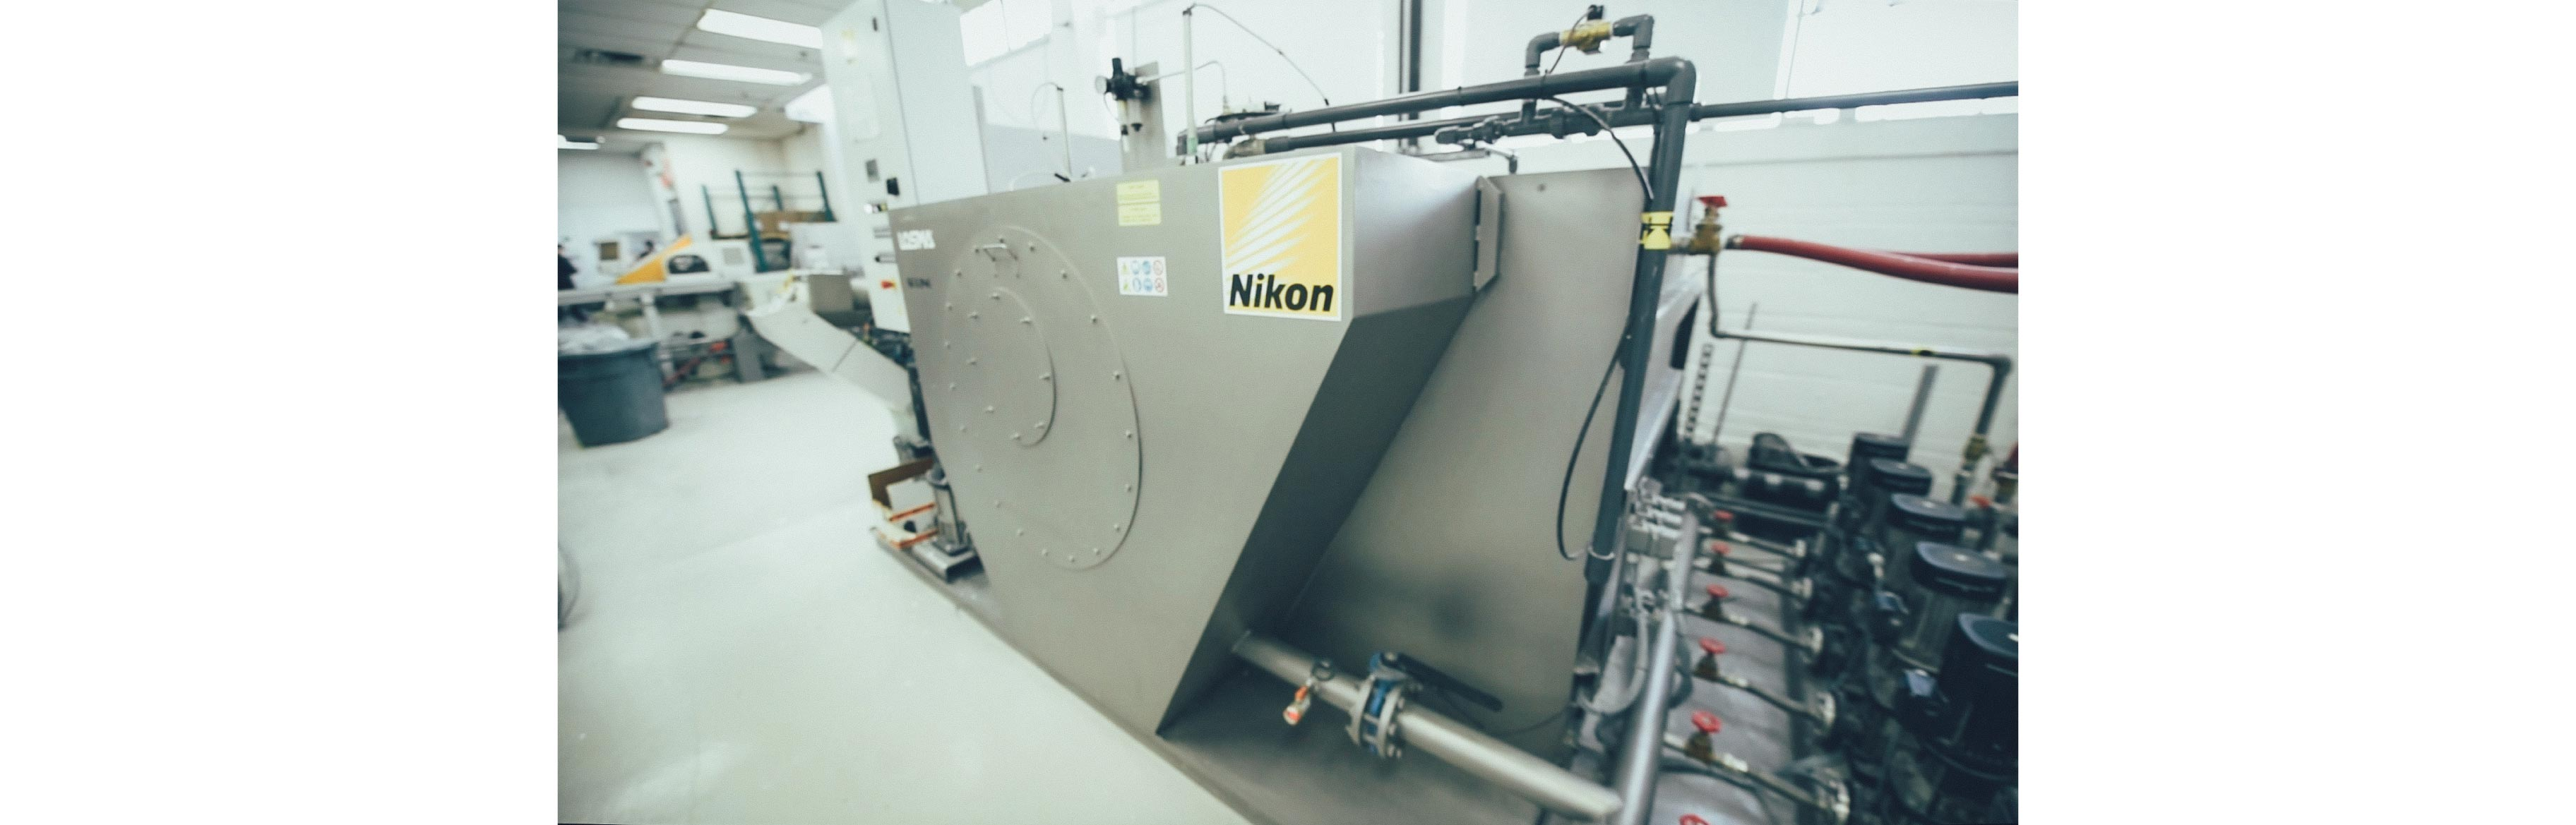 A machine is filtering the water used by the Montreal Nikon plant